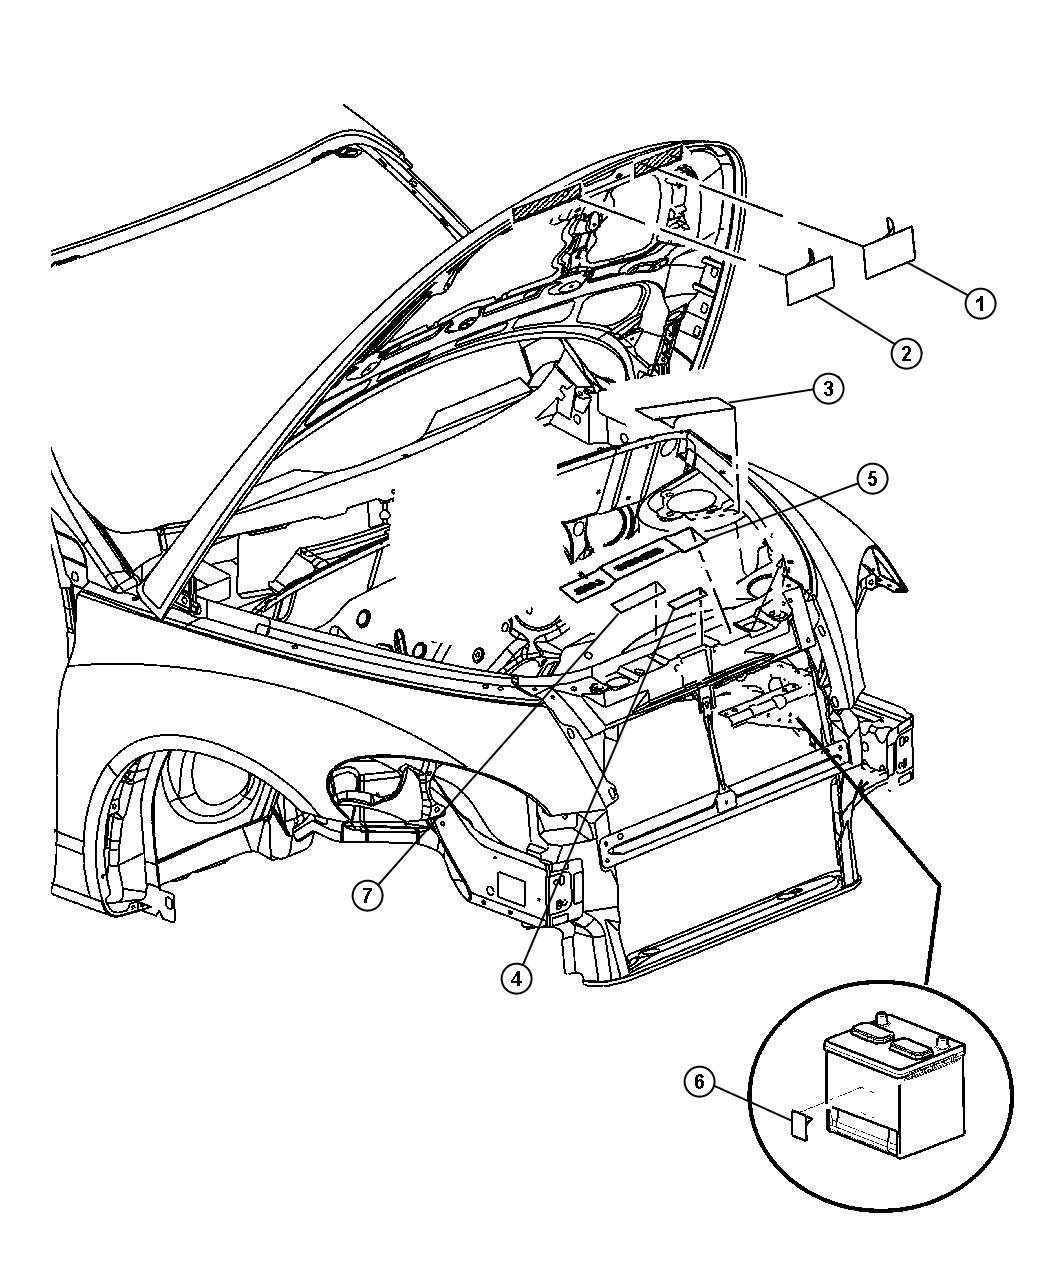 chrysler pt cruiser parts diagram chrysler free engine image for